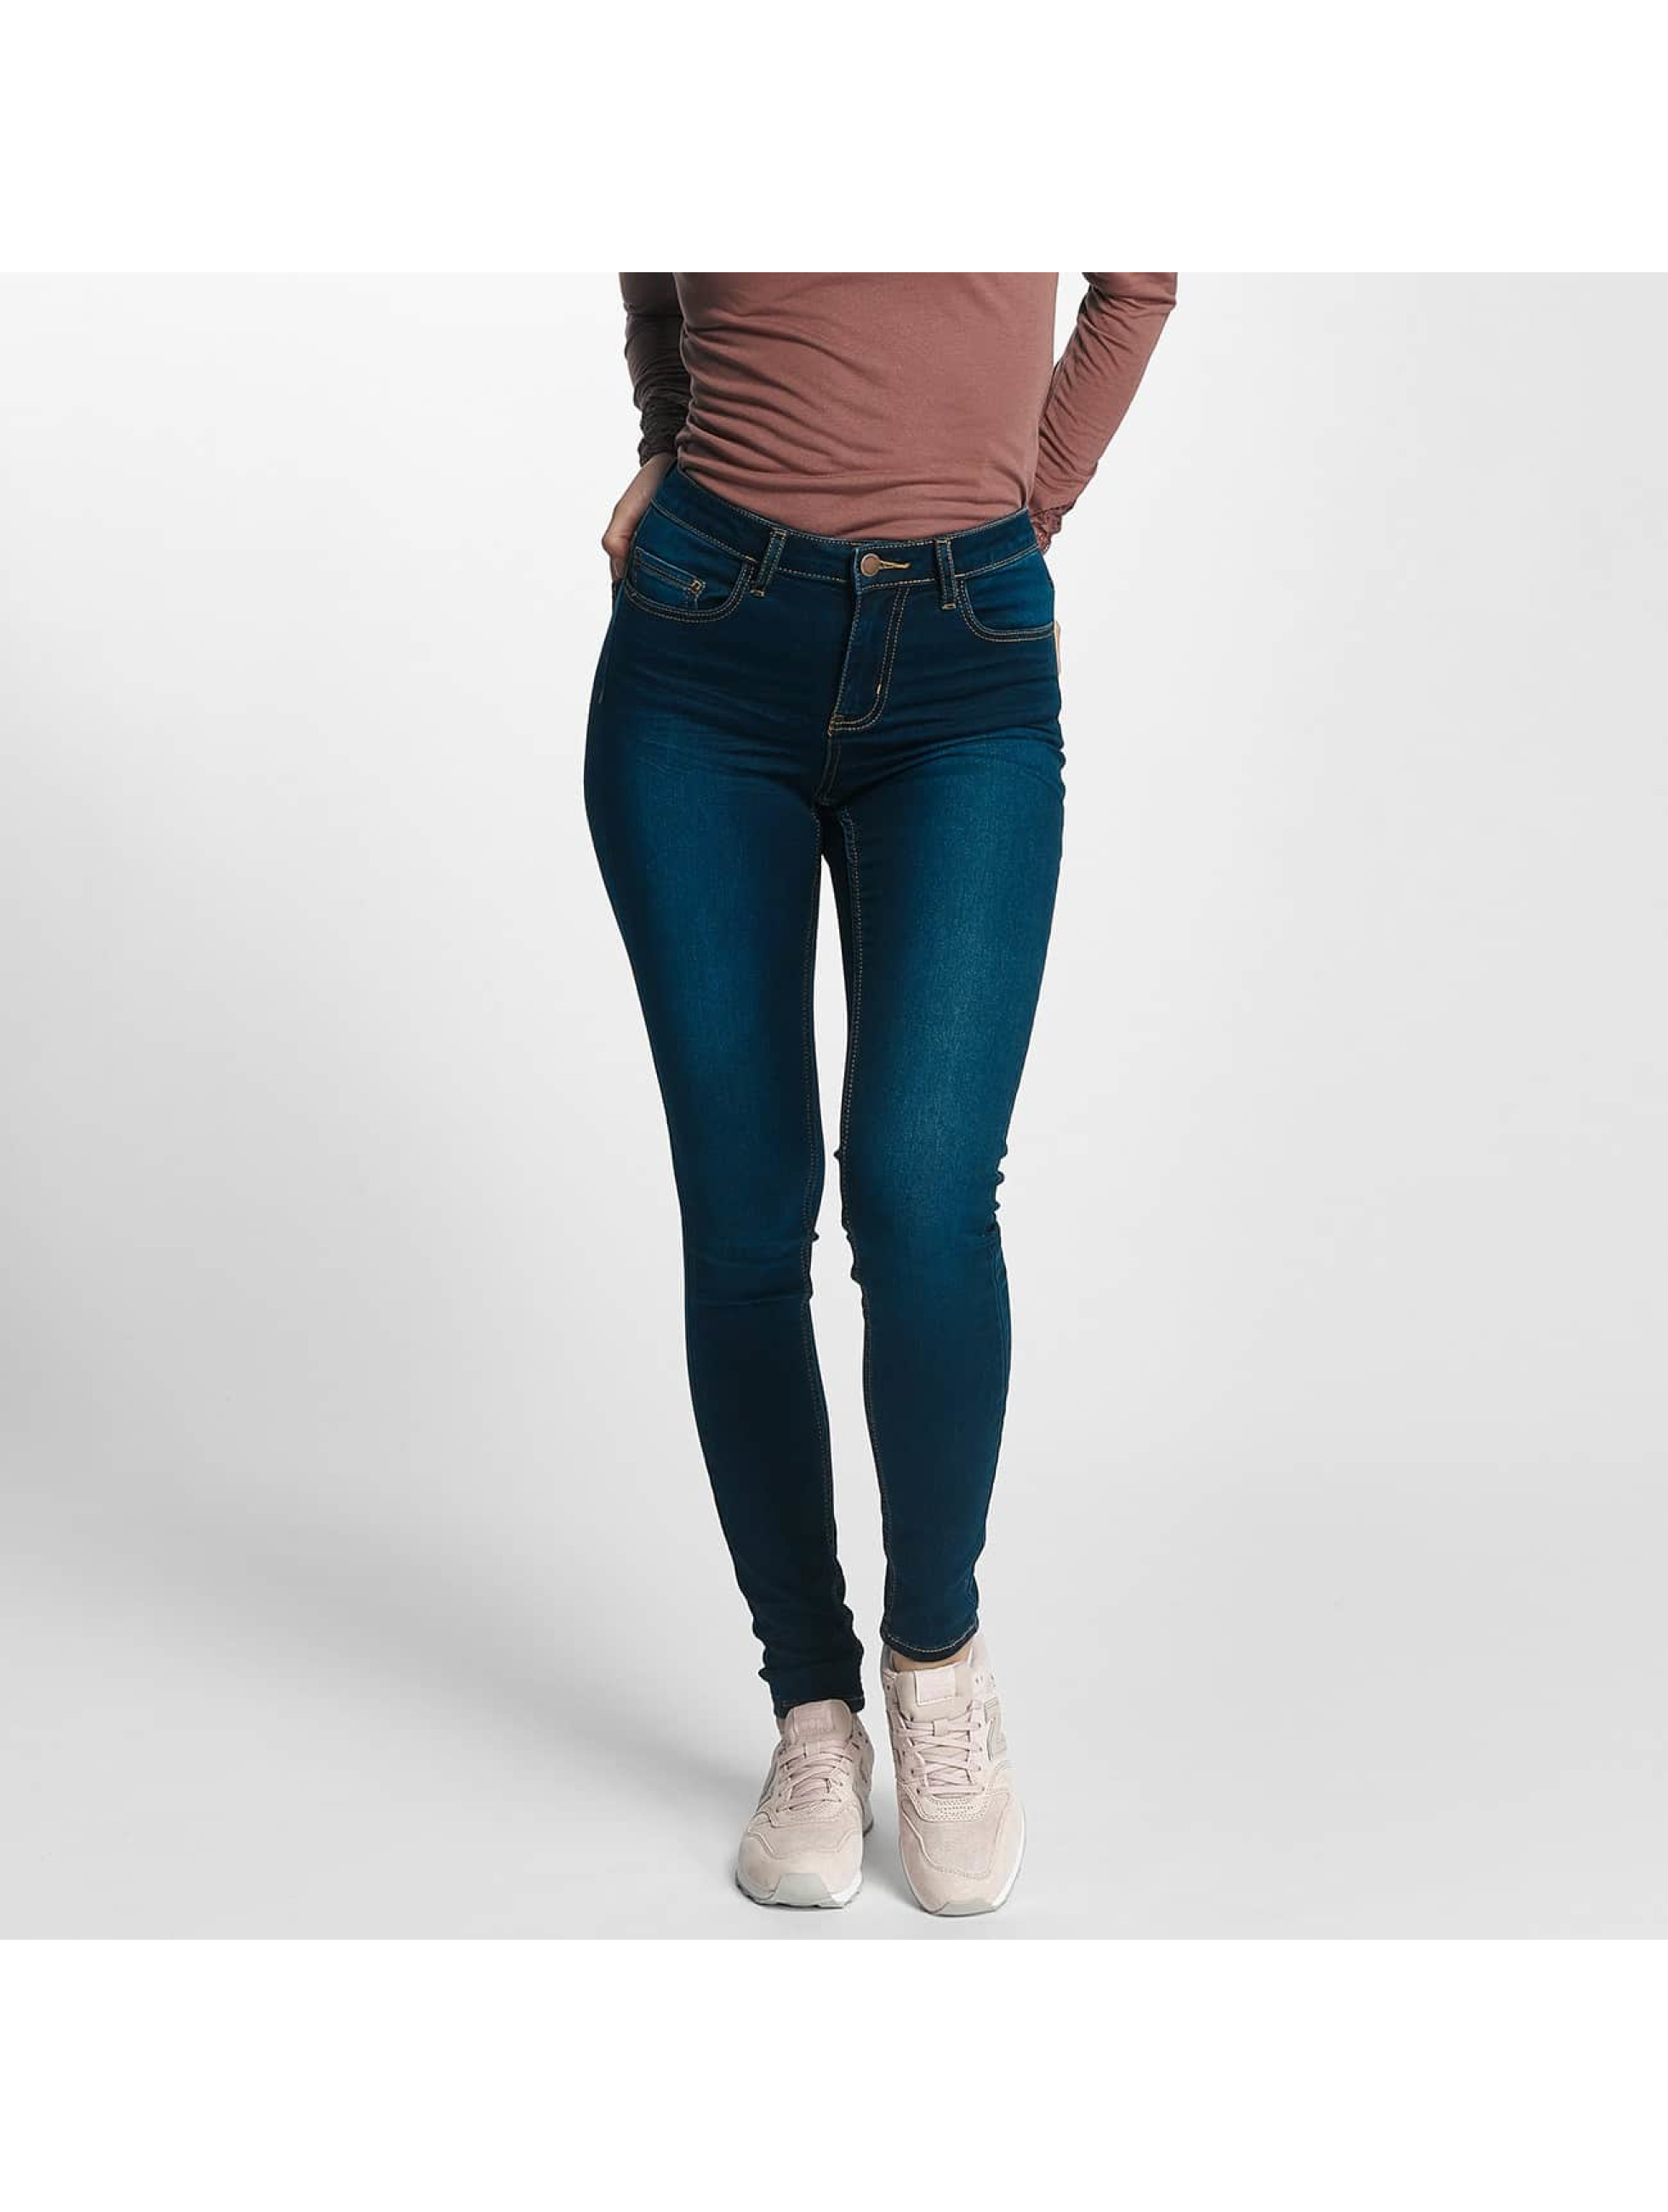 Pieces Frauen Skinny Jeans pcFive Bettysoft Mid Waist in blau